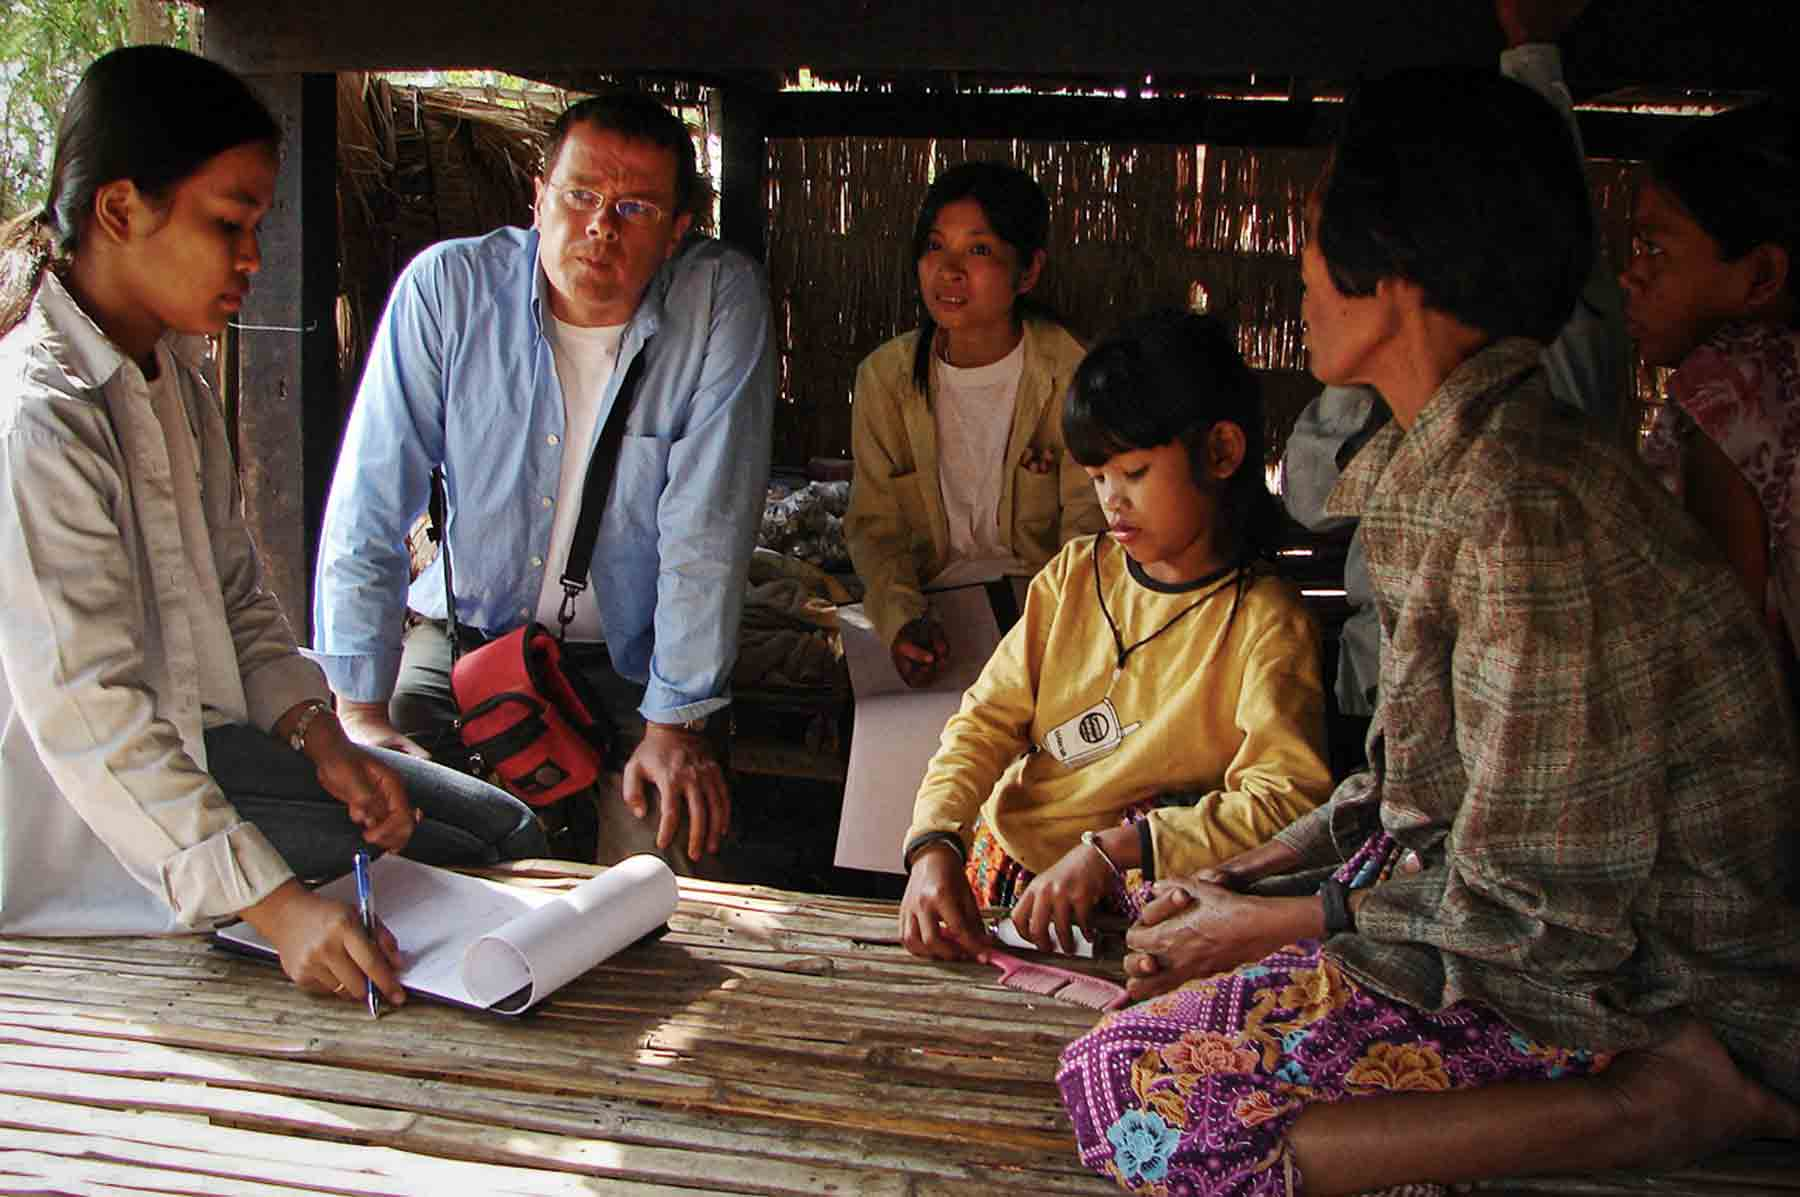 Localisation and humanitarian intervention in a village in Cambodia for poor children suffering from ill-treatment, sexual abuse or abandoned by their parents and entrusted to people from the village.